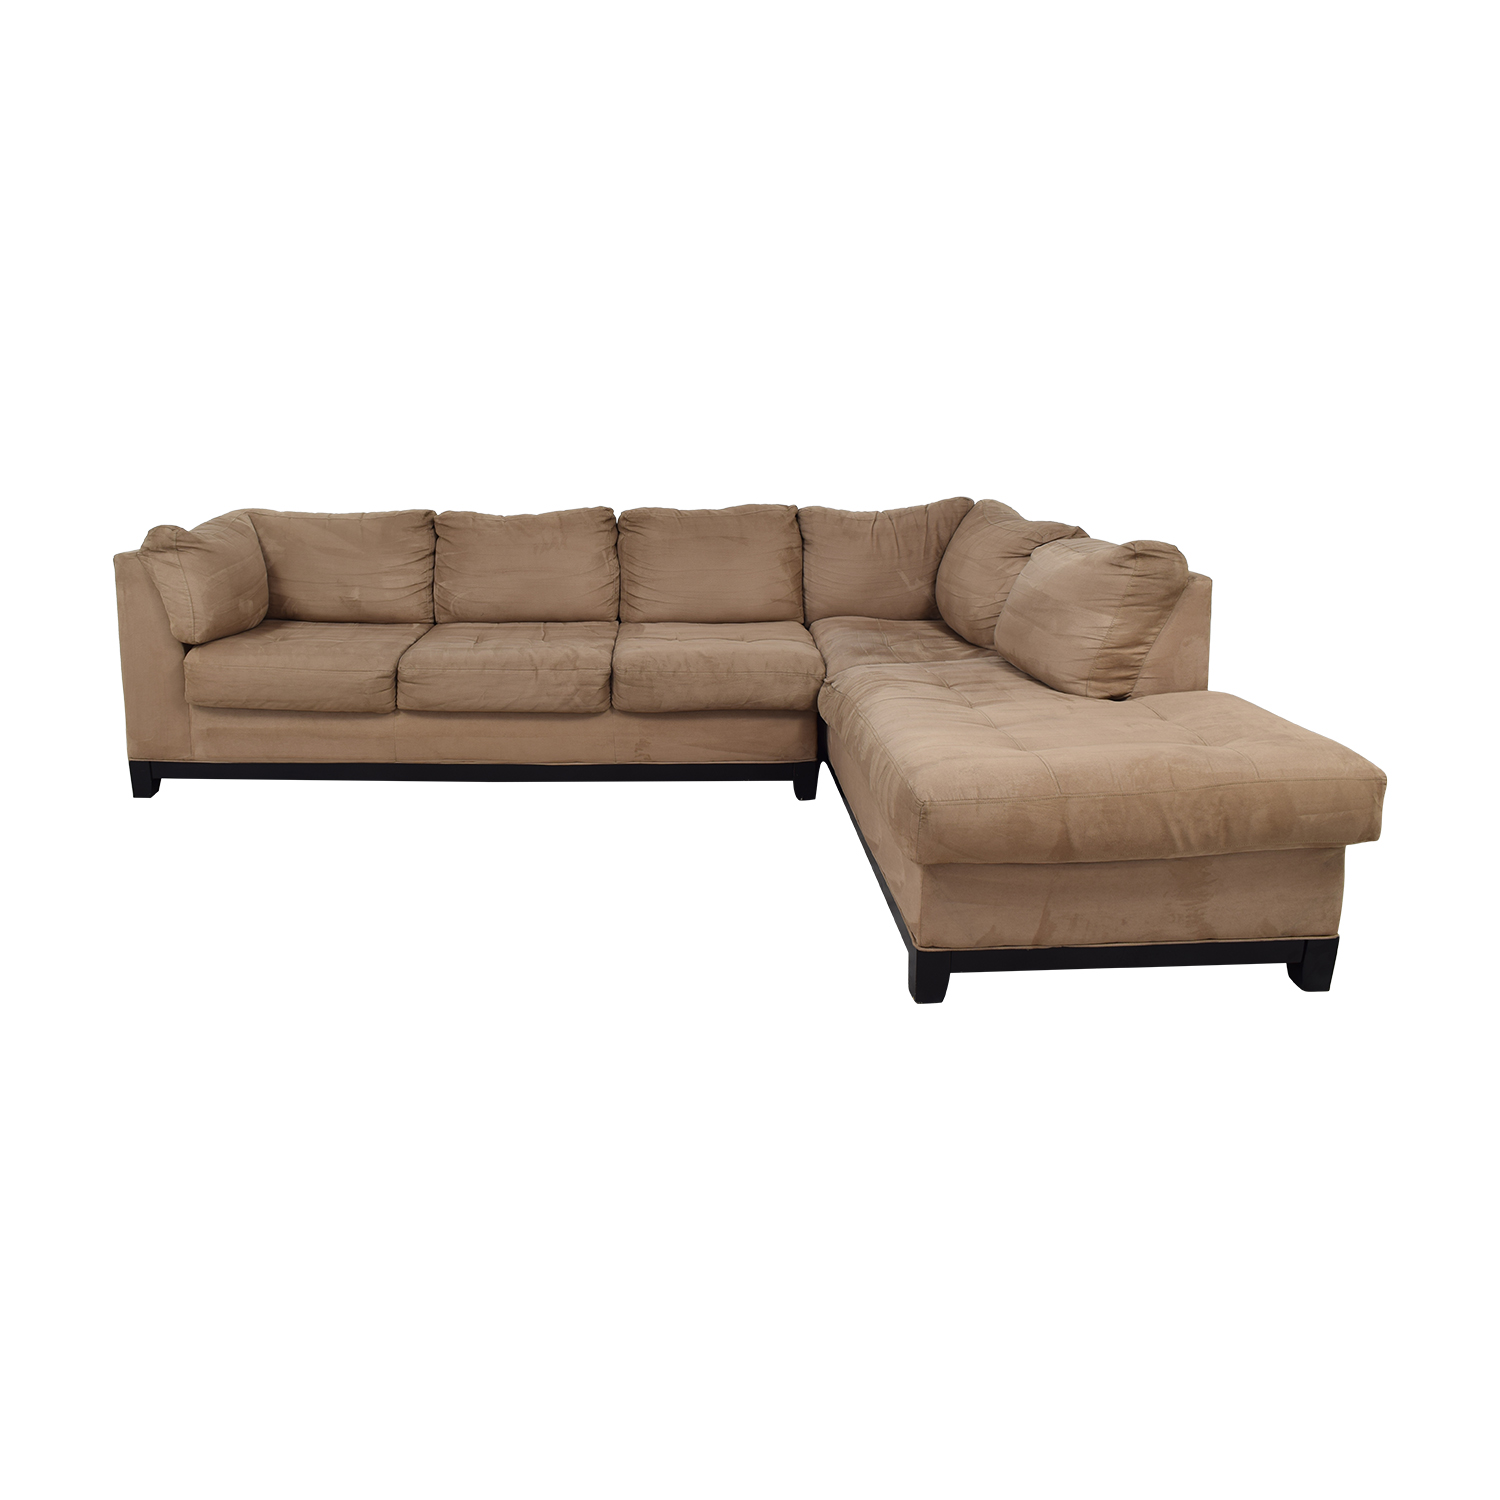 Raymour & Flanigan Grey Microfiber L- Shaped Sectional on sale